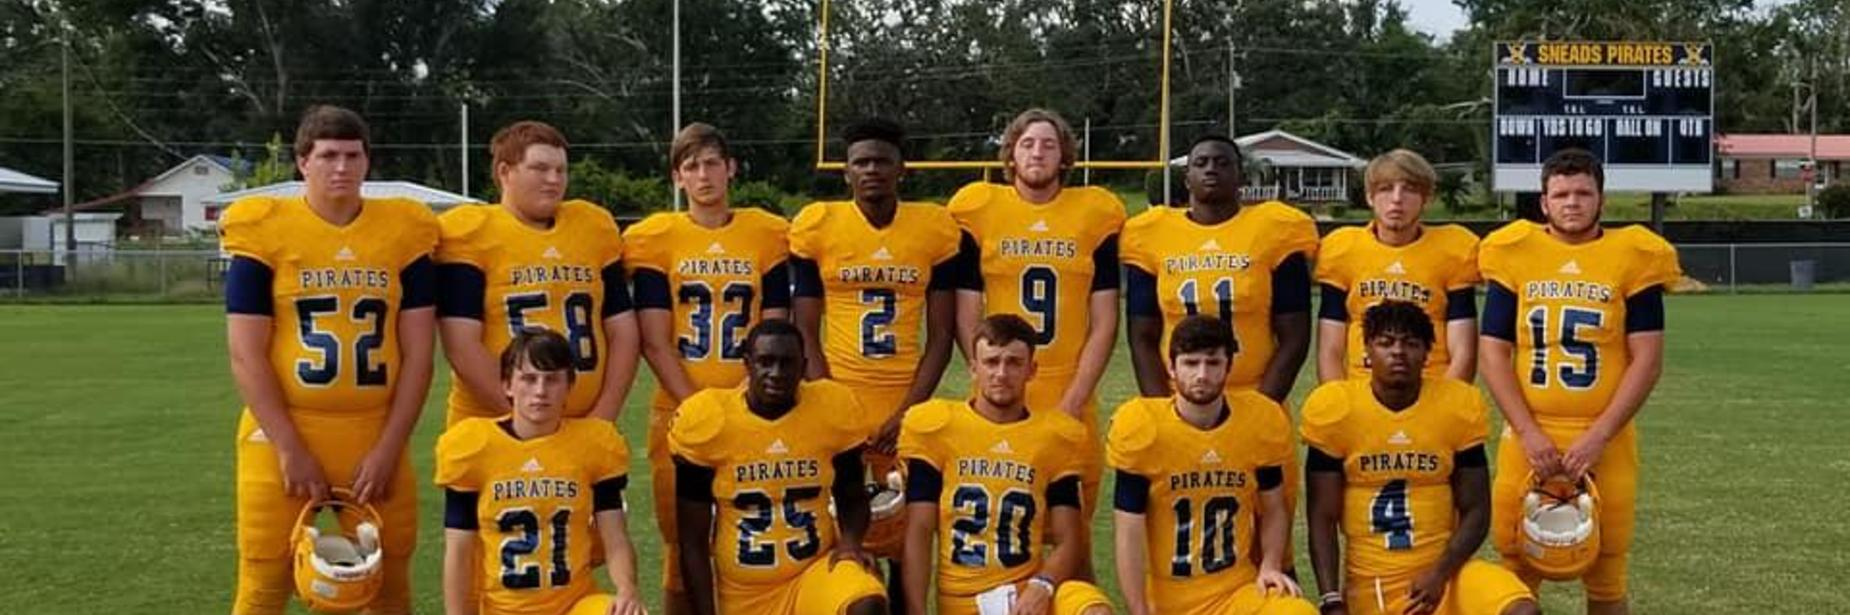 2019 Sneads Pirates